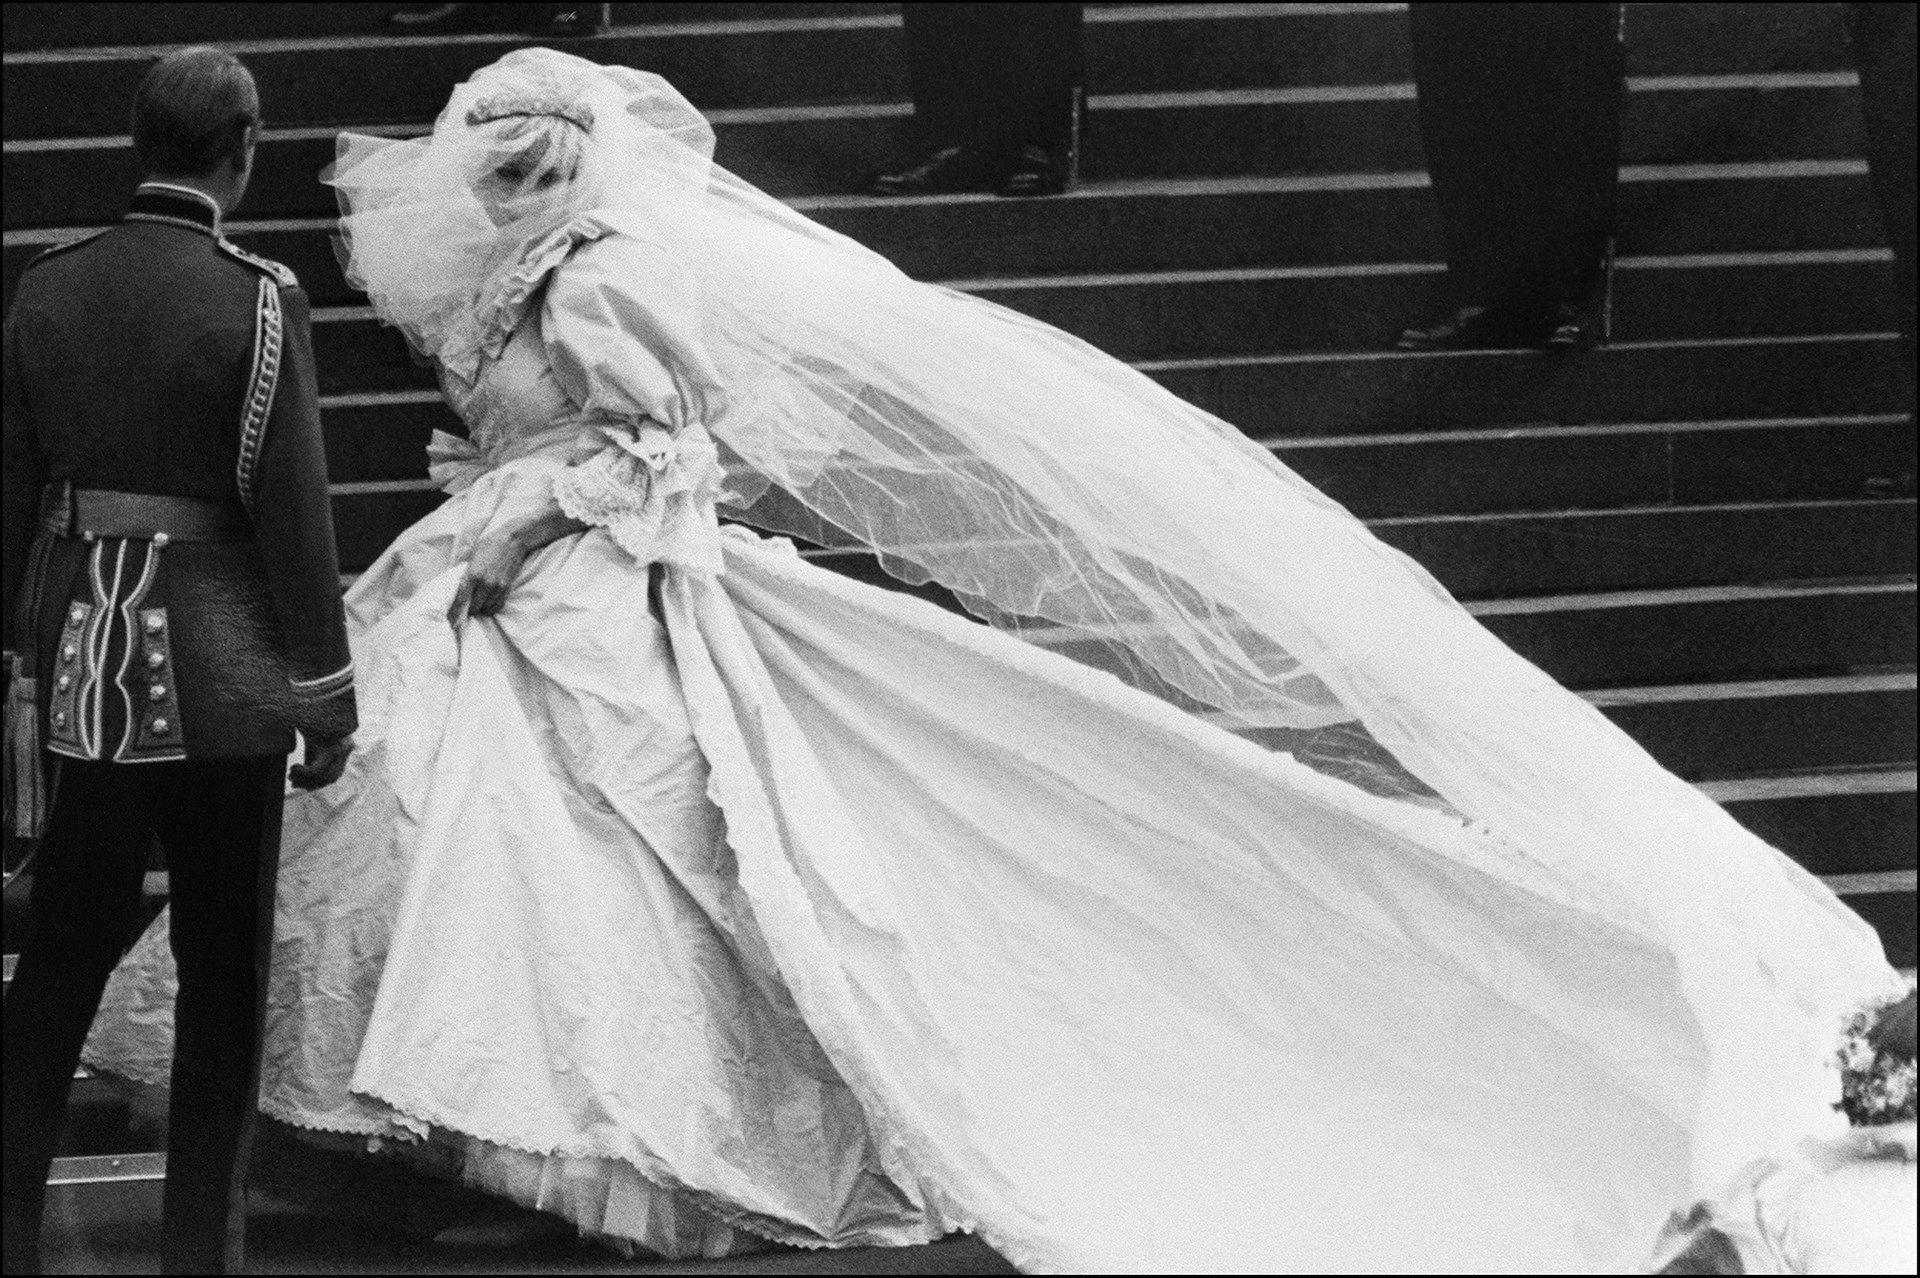 Diana Spencer's silk tafetta gown embodied the 80s: big, puffy with bows, pearls and embroidery - oh, and a 25-foot train. Diana wore her family's heirloom tiara, the Spencer Tiara.